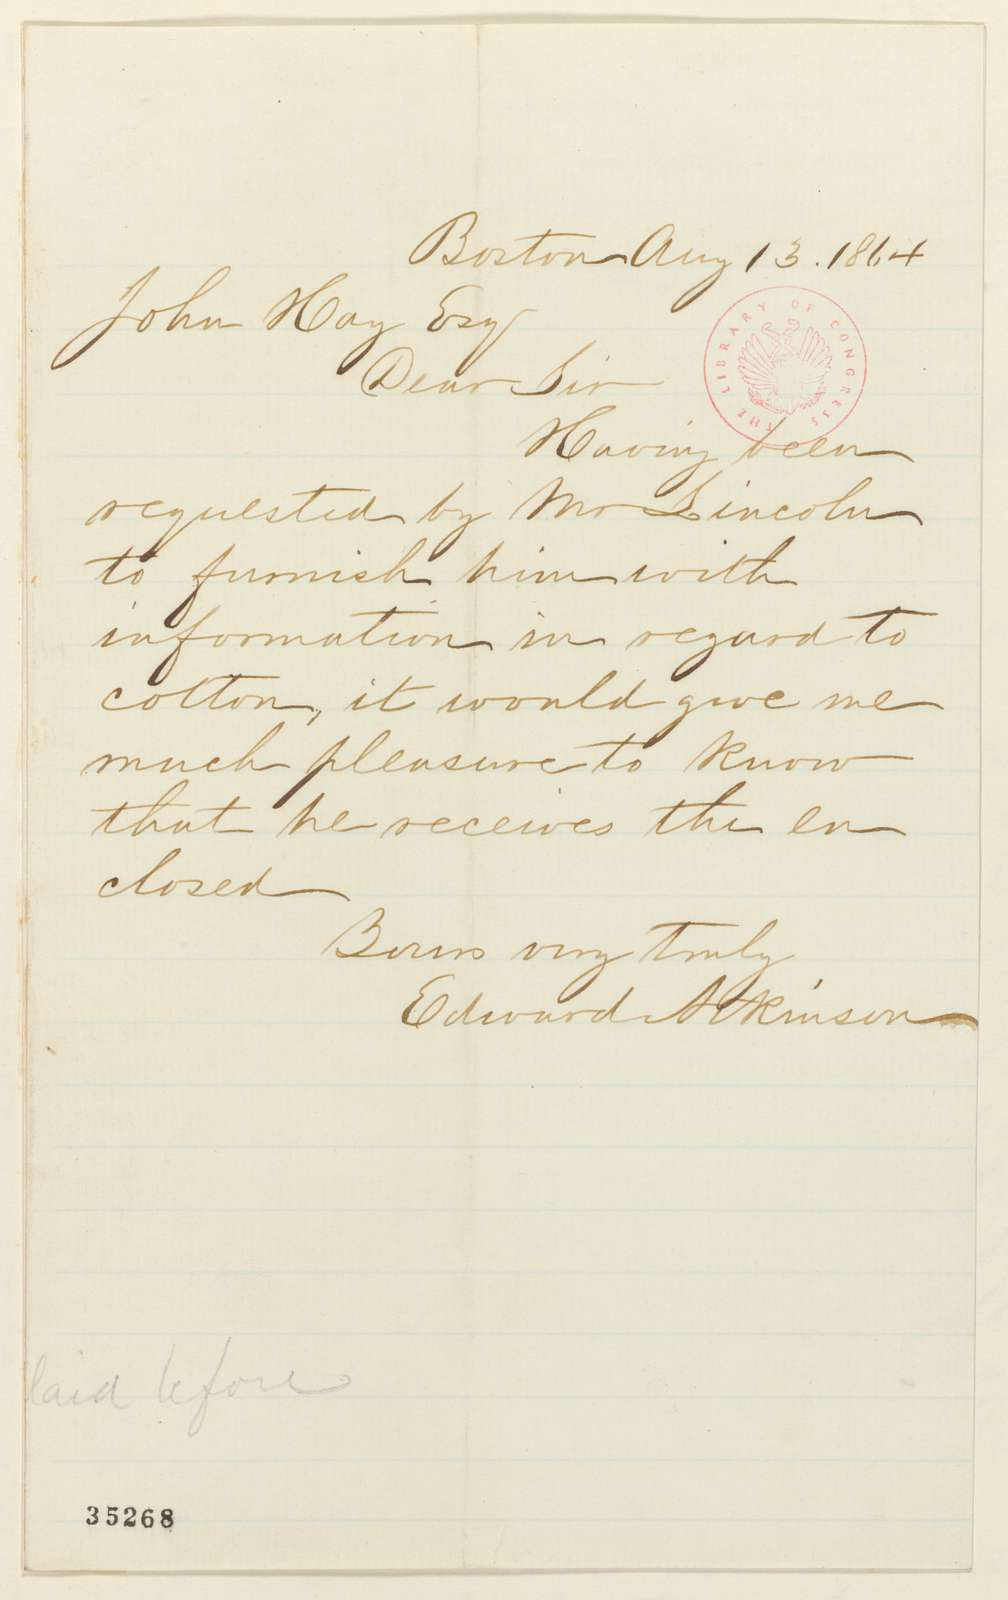 Abraham Lincoln papers: Series 1. General Correspondence. 1833-1916: Edward Atkinson to John Hay, Saturday, August 13, 1864 (Cover letter)